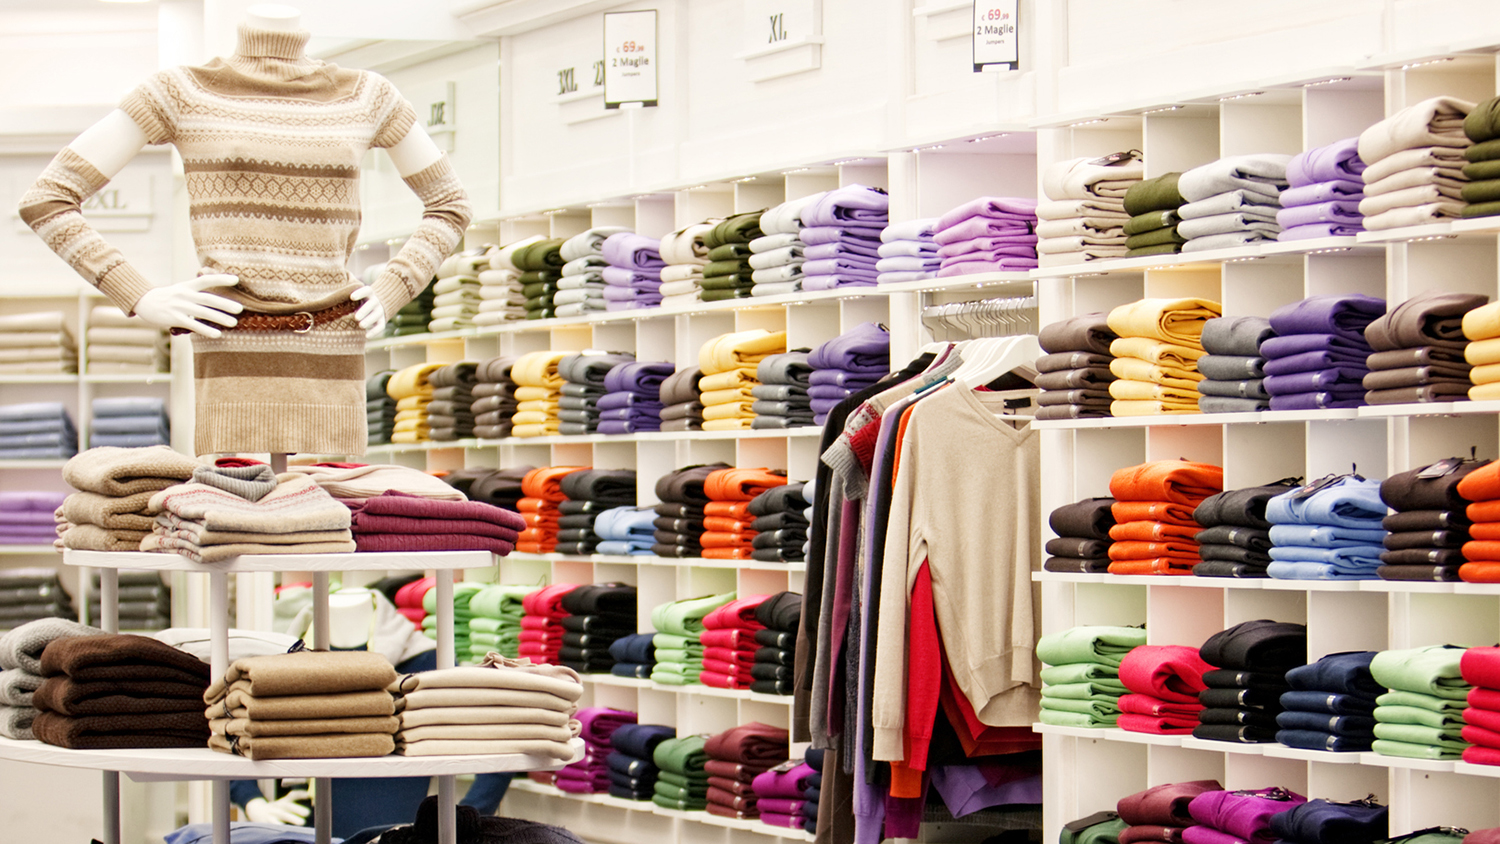 16 Best Clothing Stores for Women Over 50